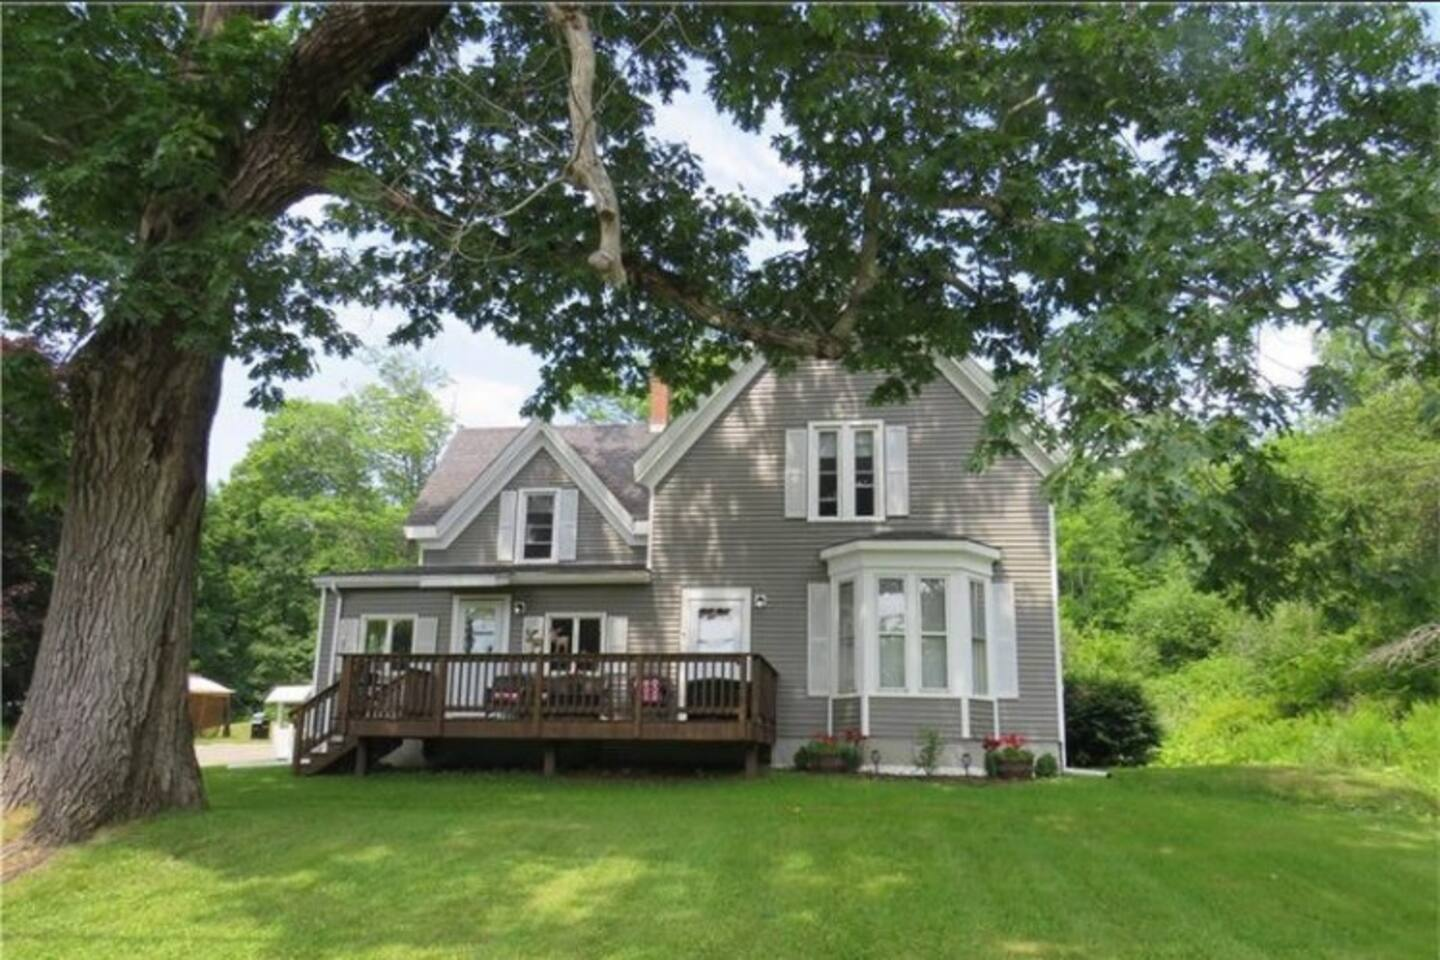 1870 Farm House two miles from Rockland village and harbor, private 2nd floor, ground floor available shared upon request